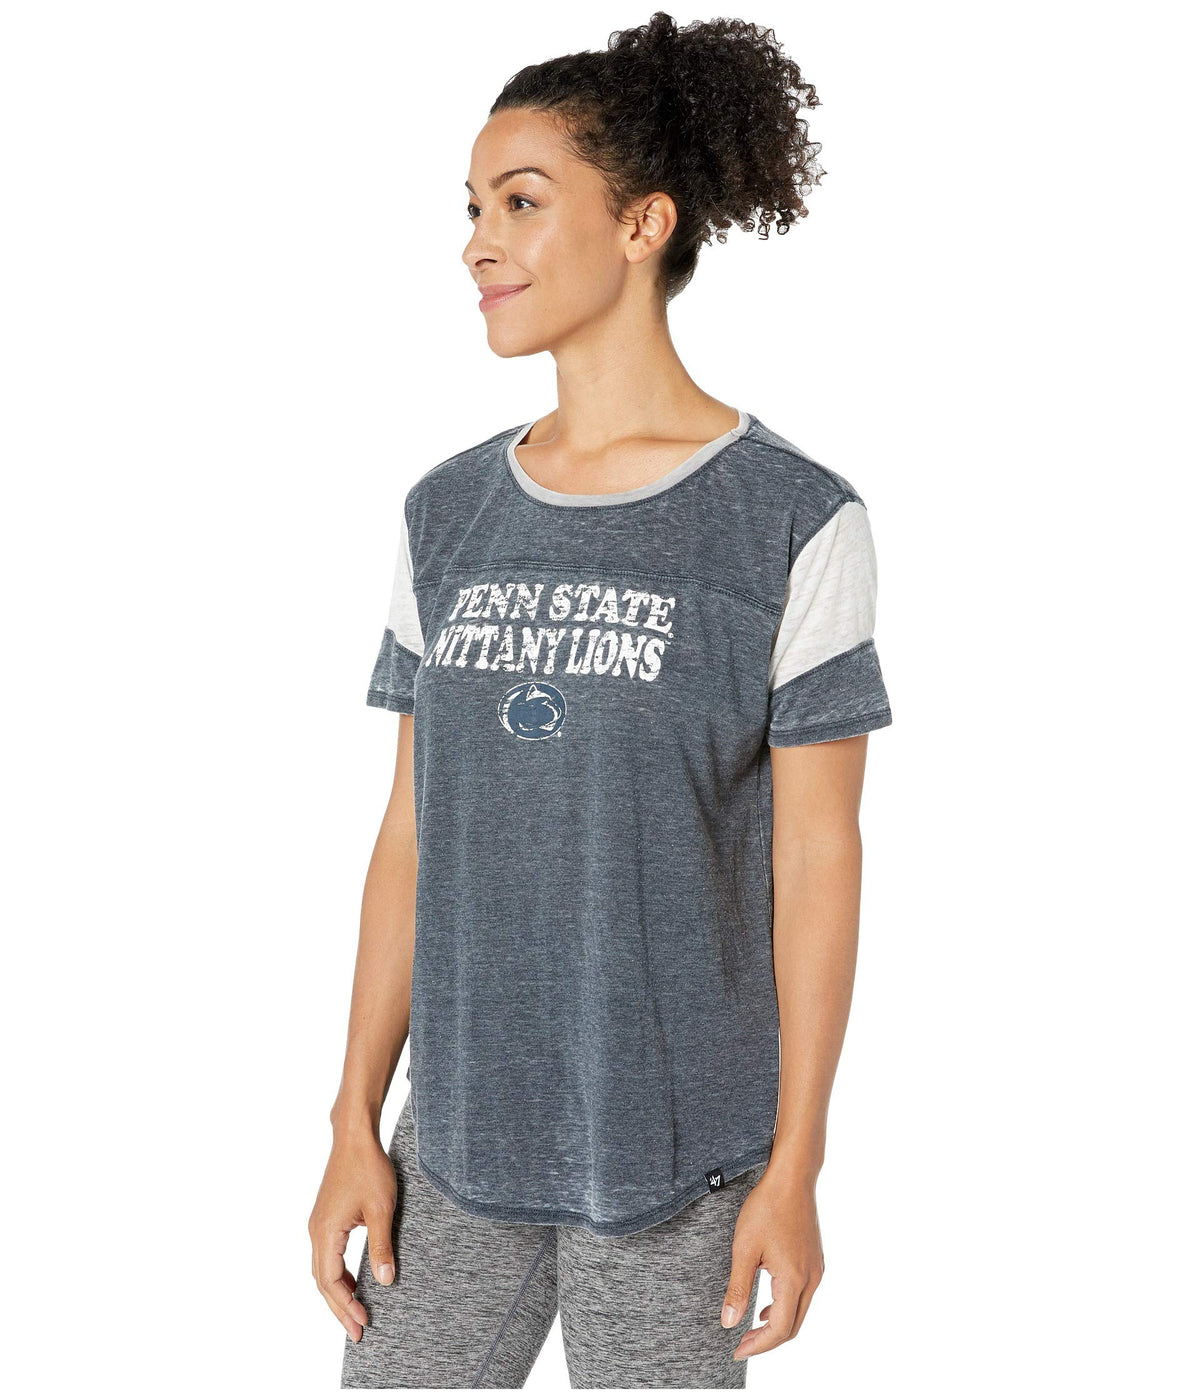 Penn State Nittany Lions Fade Out Boyfriend Tee